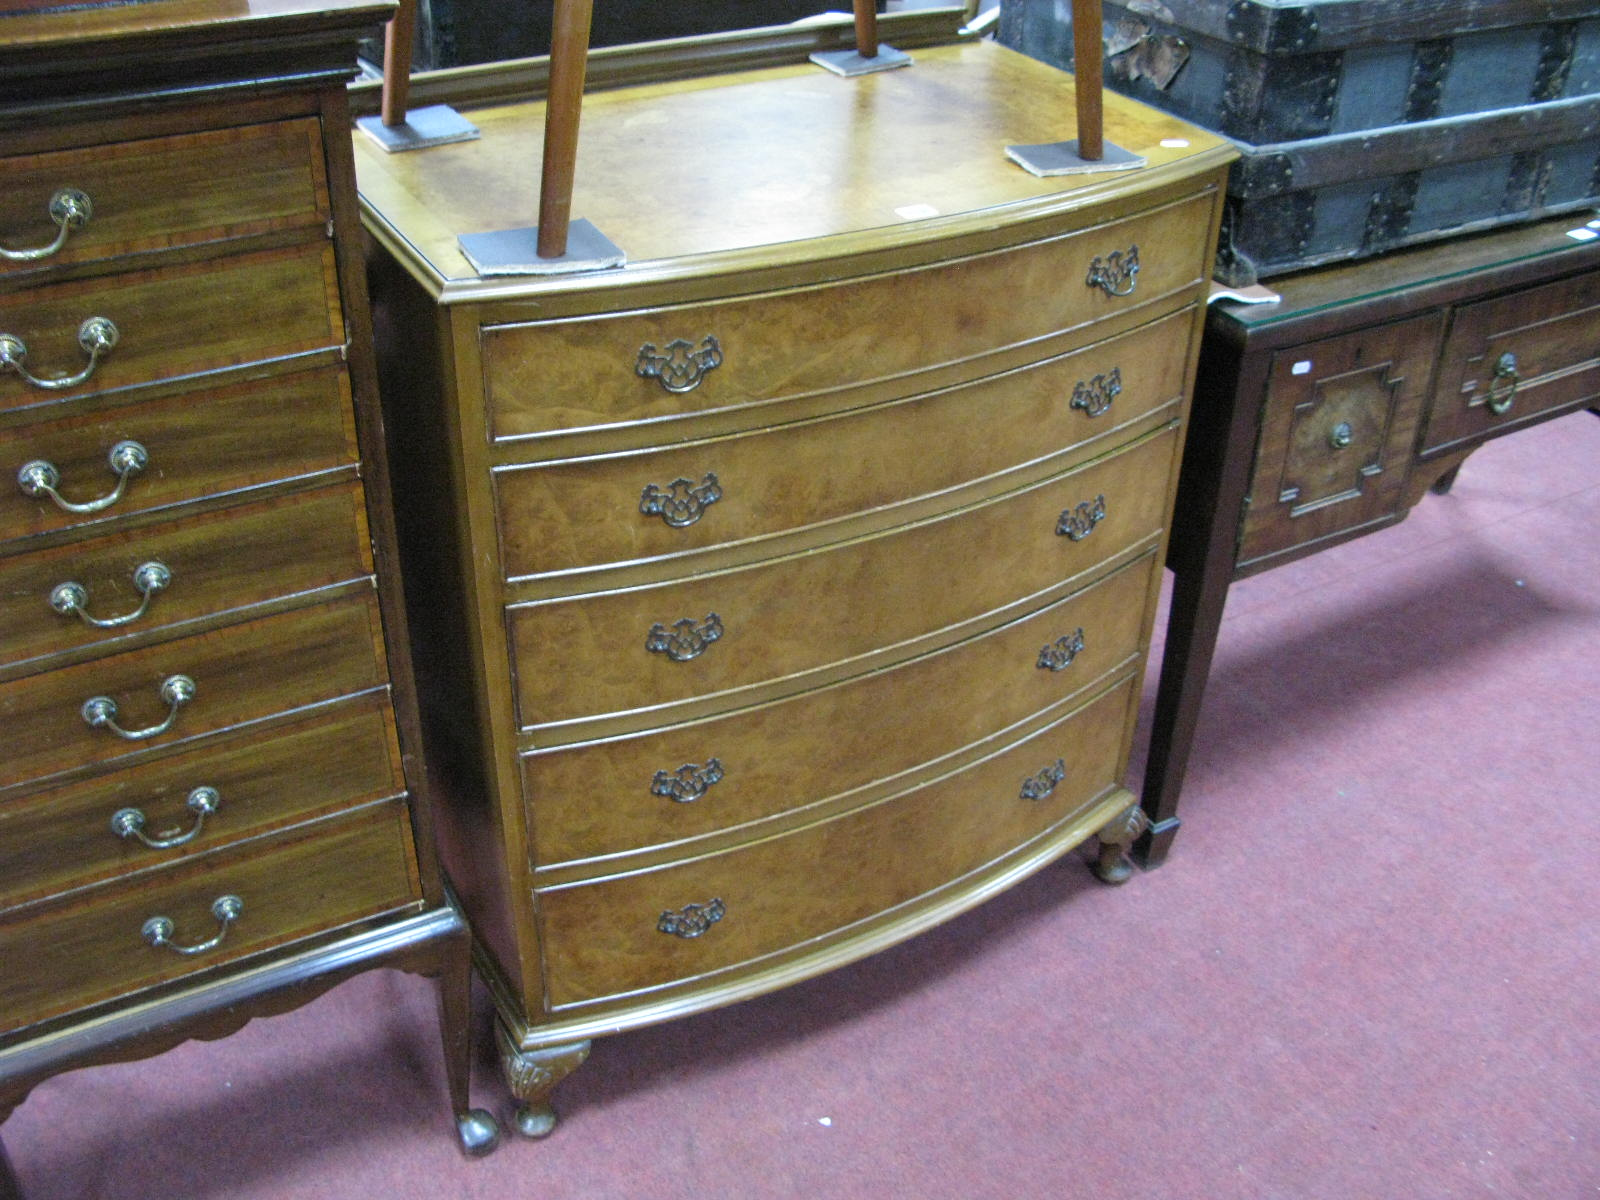 Lot 1516 - A Walnut Bow Fronted Chest of Drawers, with a low back, five graduated drawers, on cabriole legs.